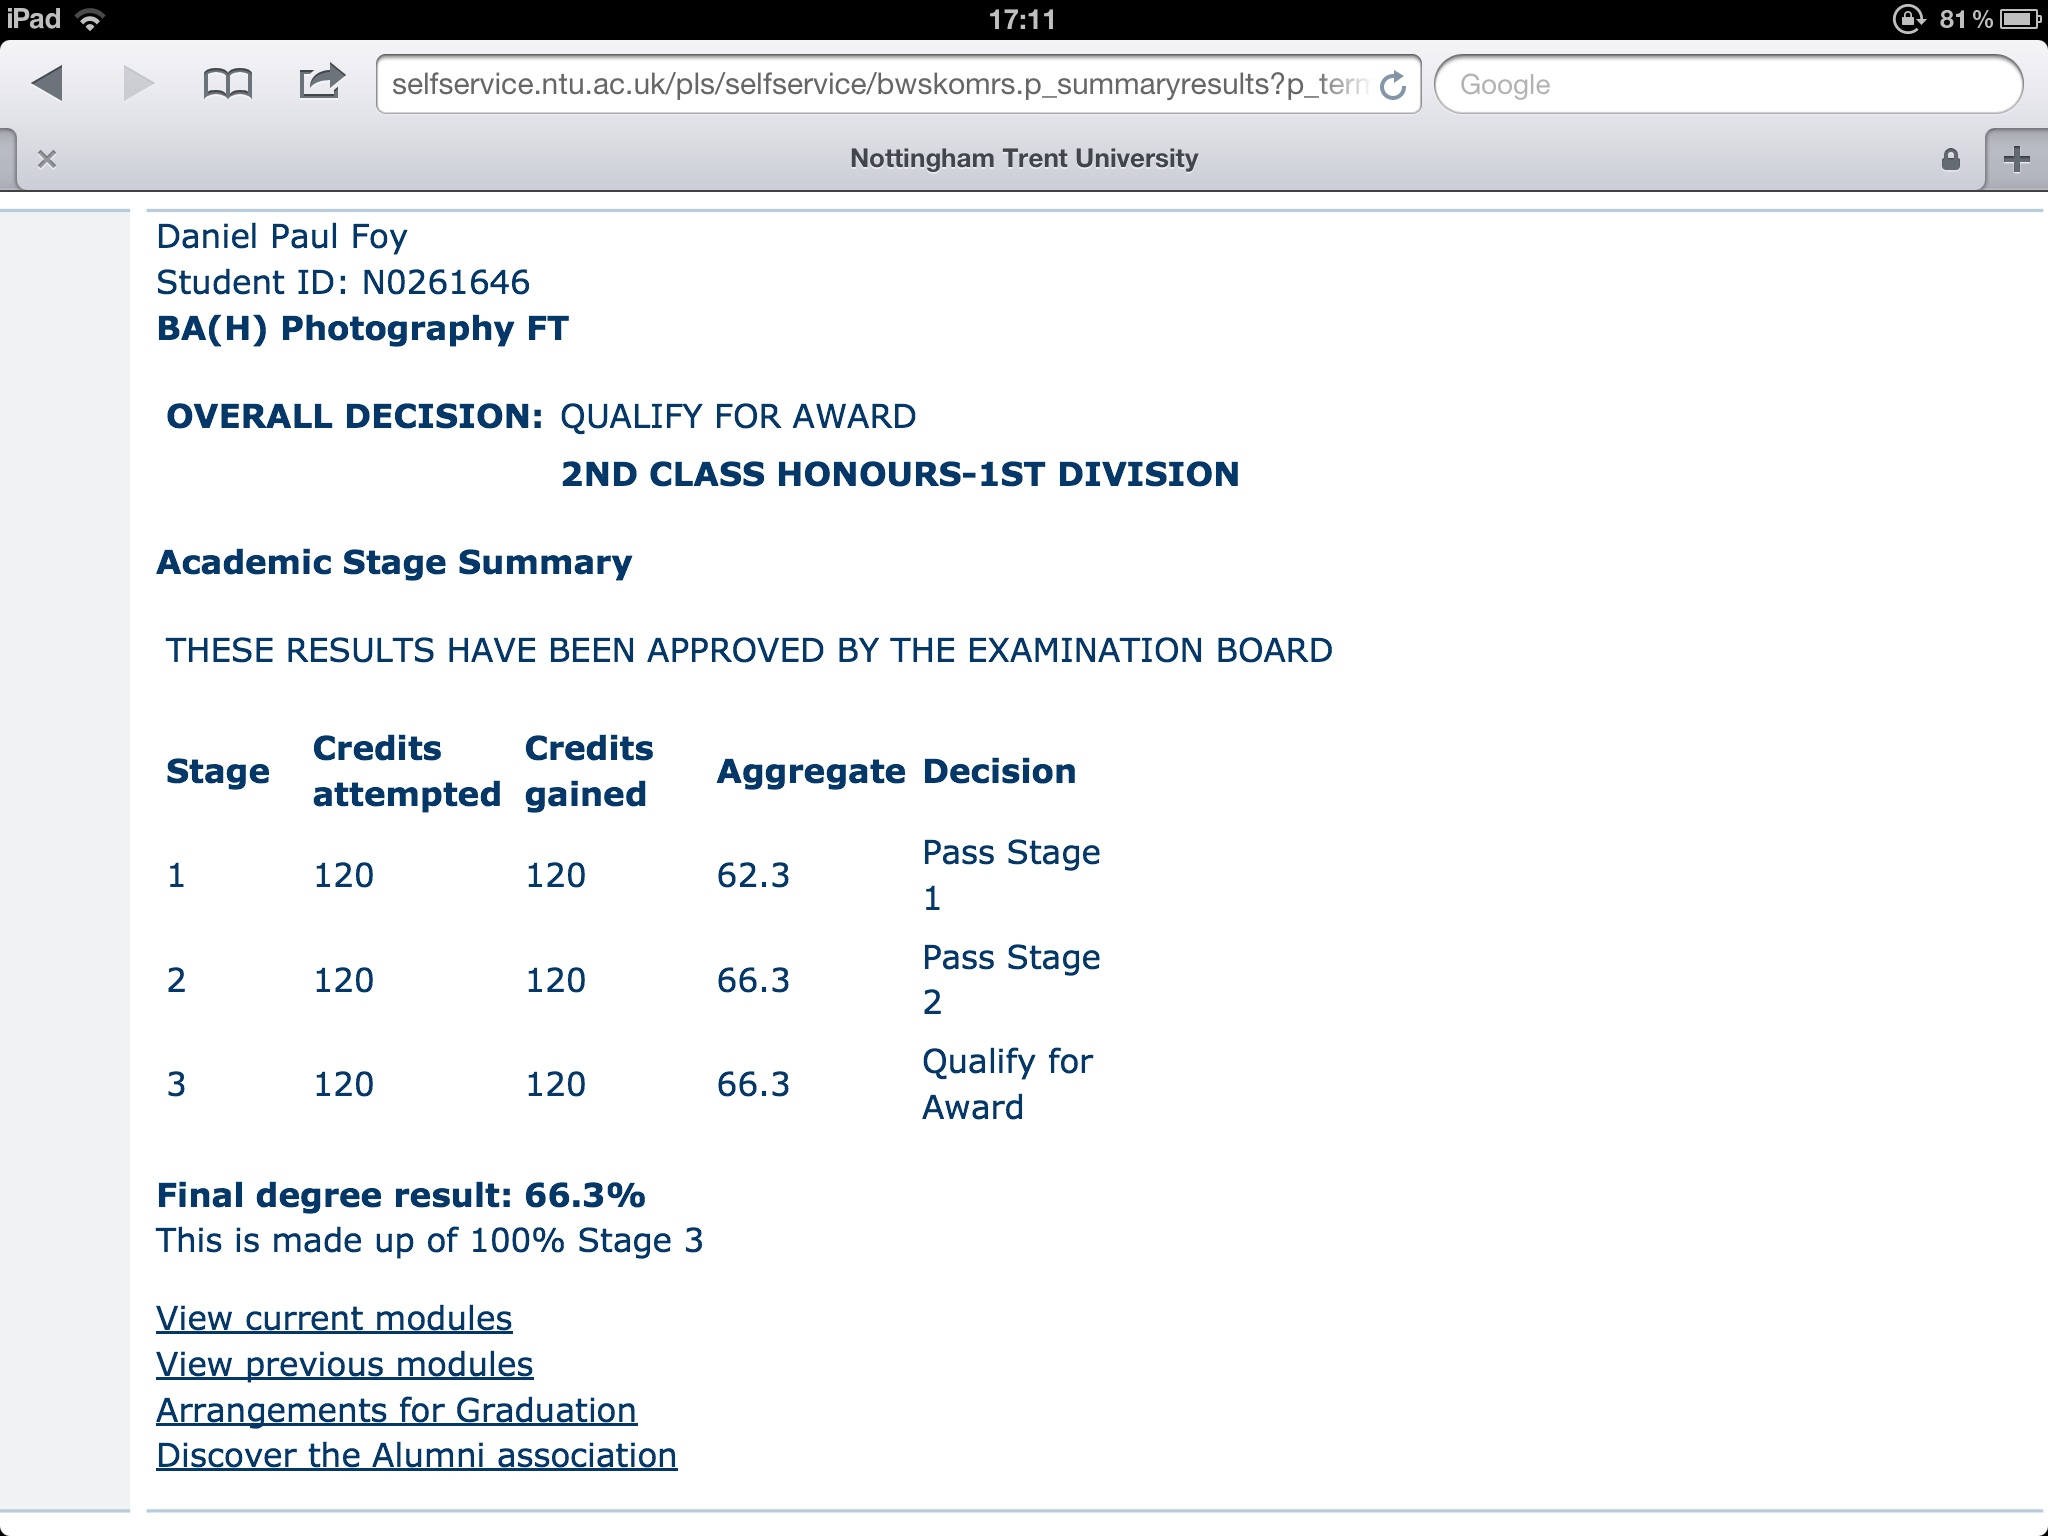 My results on NTU's NOW system